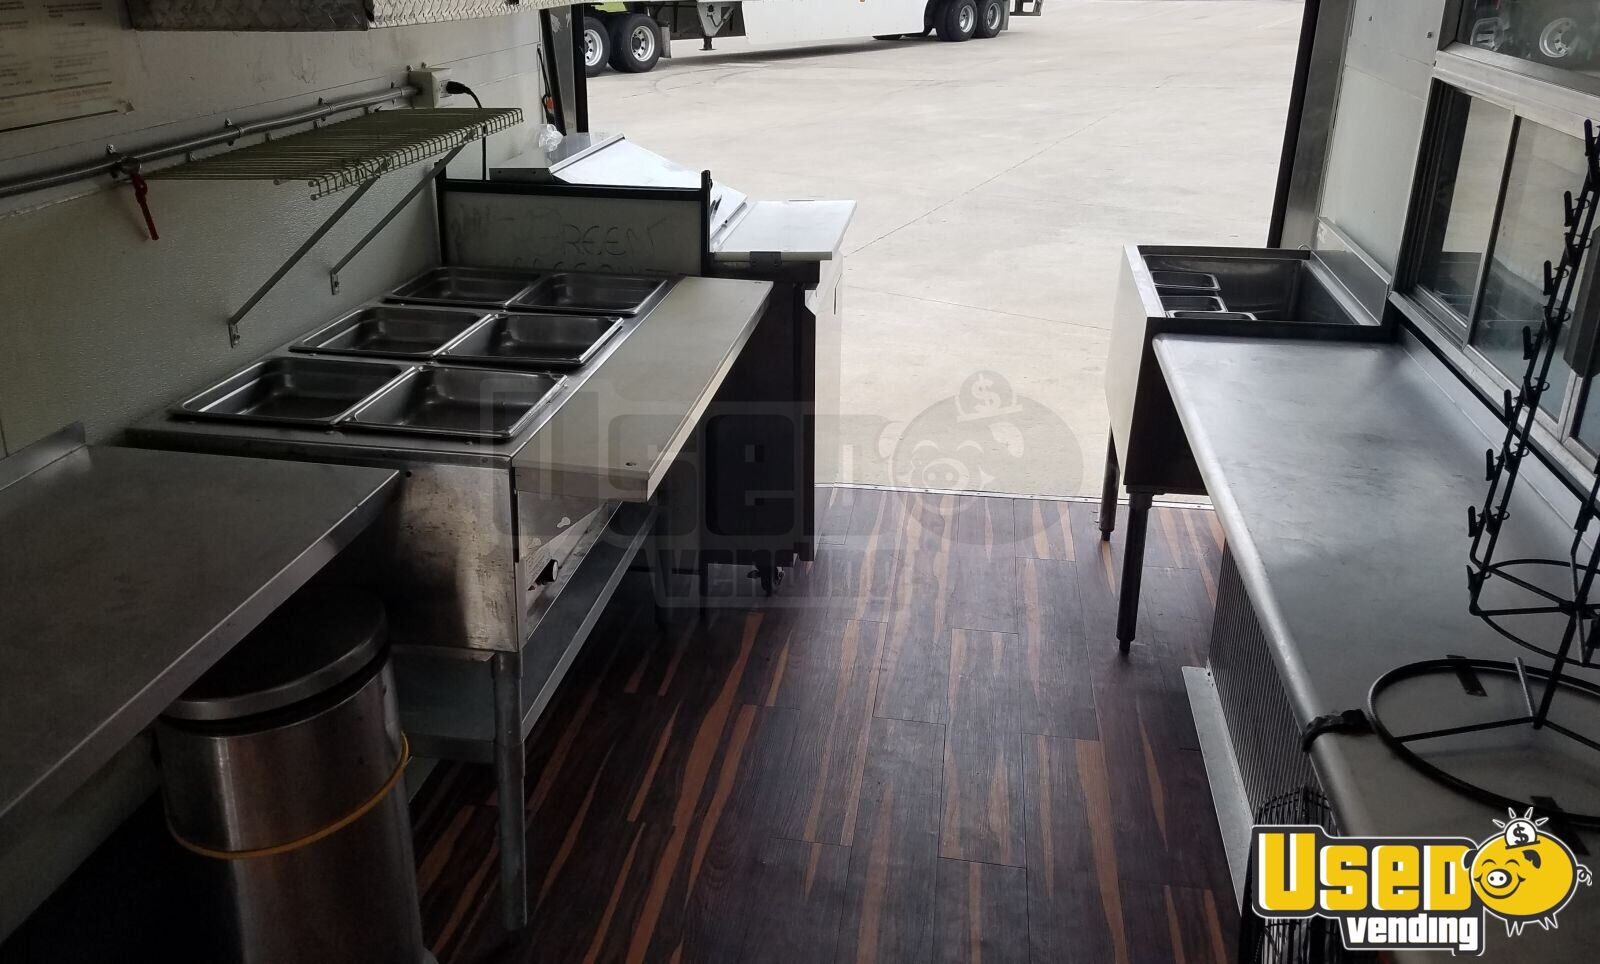 2008 Pace American Cs716ta2 All-purpose Food Trailer Shore Power Cord Texas for Sale - 9